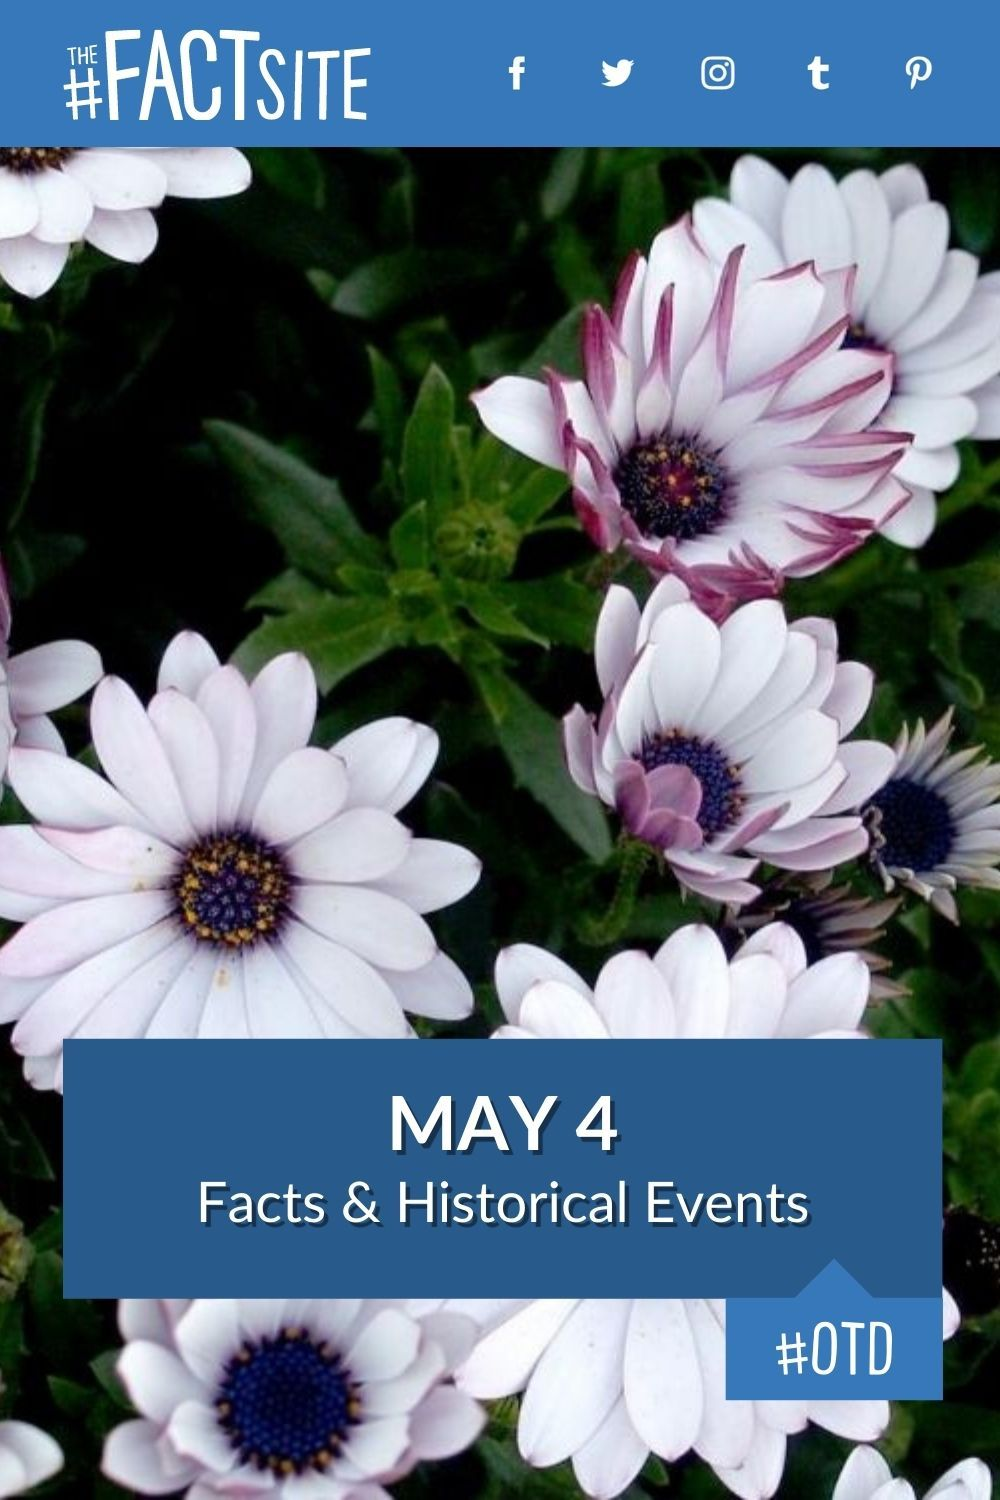 Facts & Historic Events That Happened on May 4